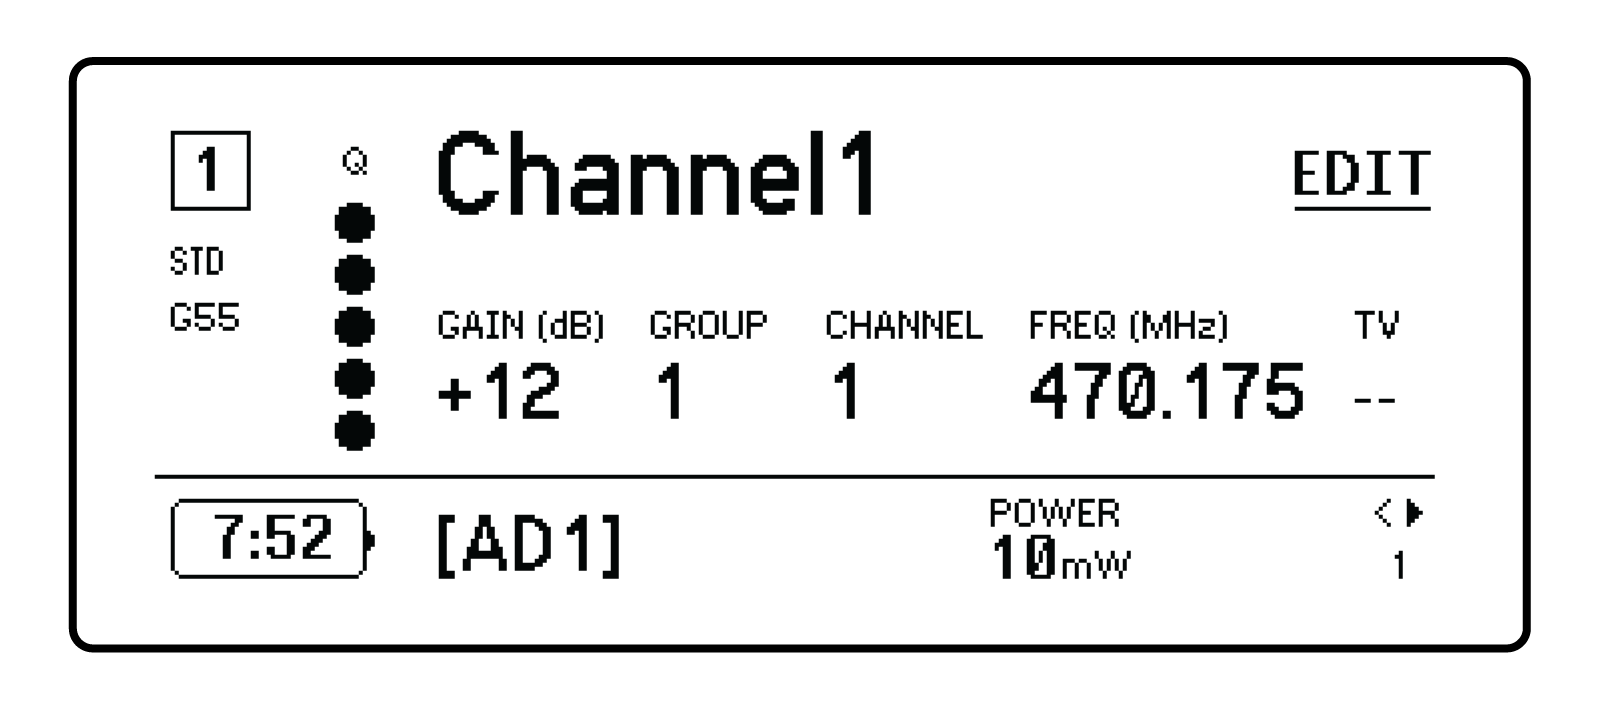 Shure Publications User Guides Ad4q Circuit Using A Visual Indicator Can Be Useful For An Rf You Adjust Gain Group Channel And Frequency By The Edit Function Button